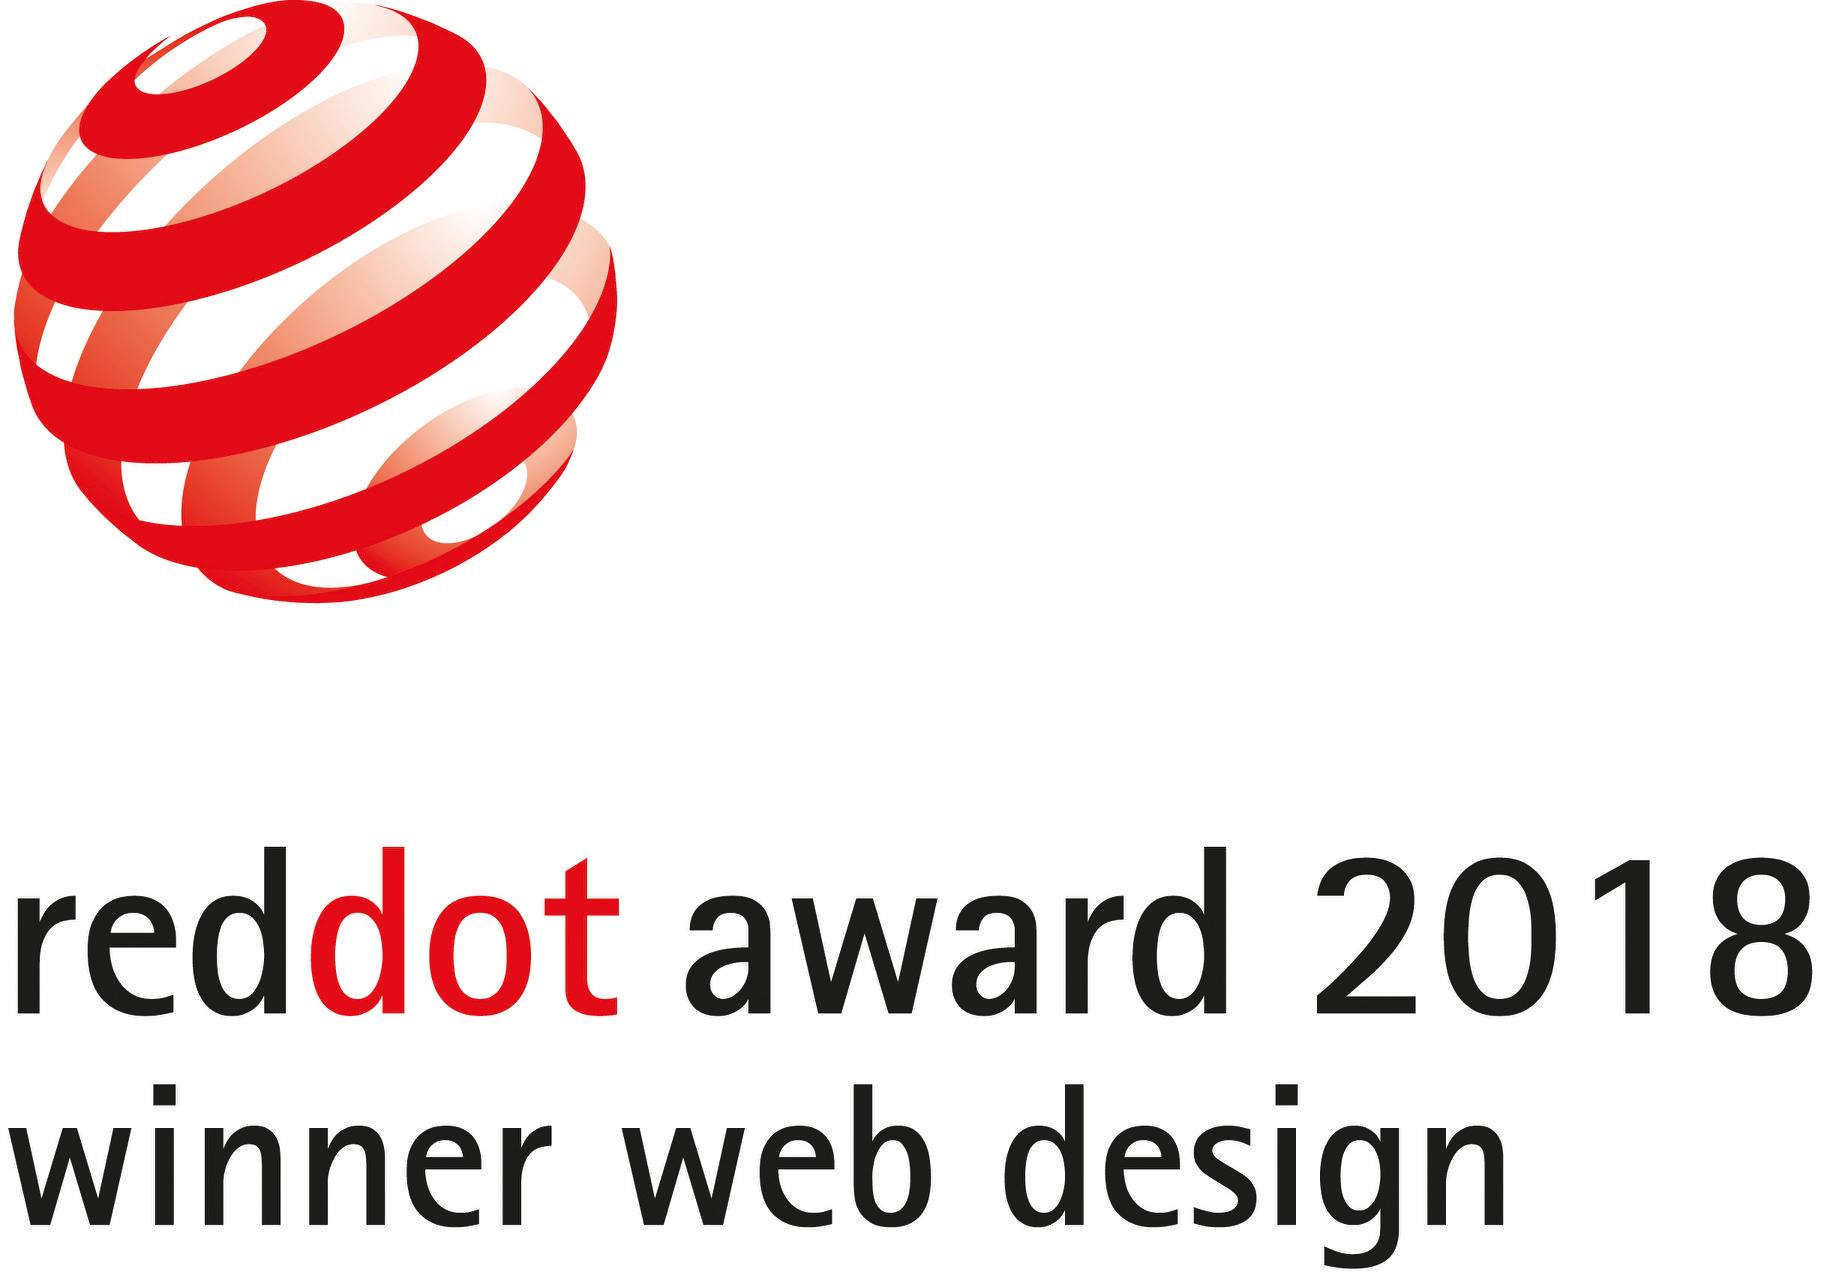 iDefendo.com won the prestigious Red Dot Award